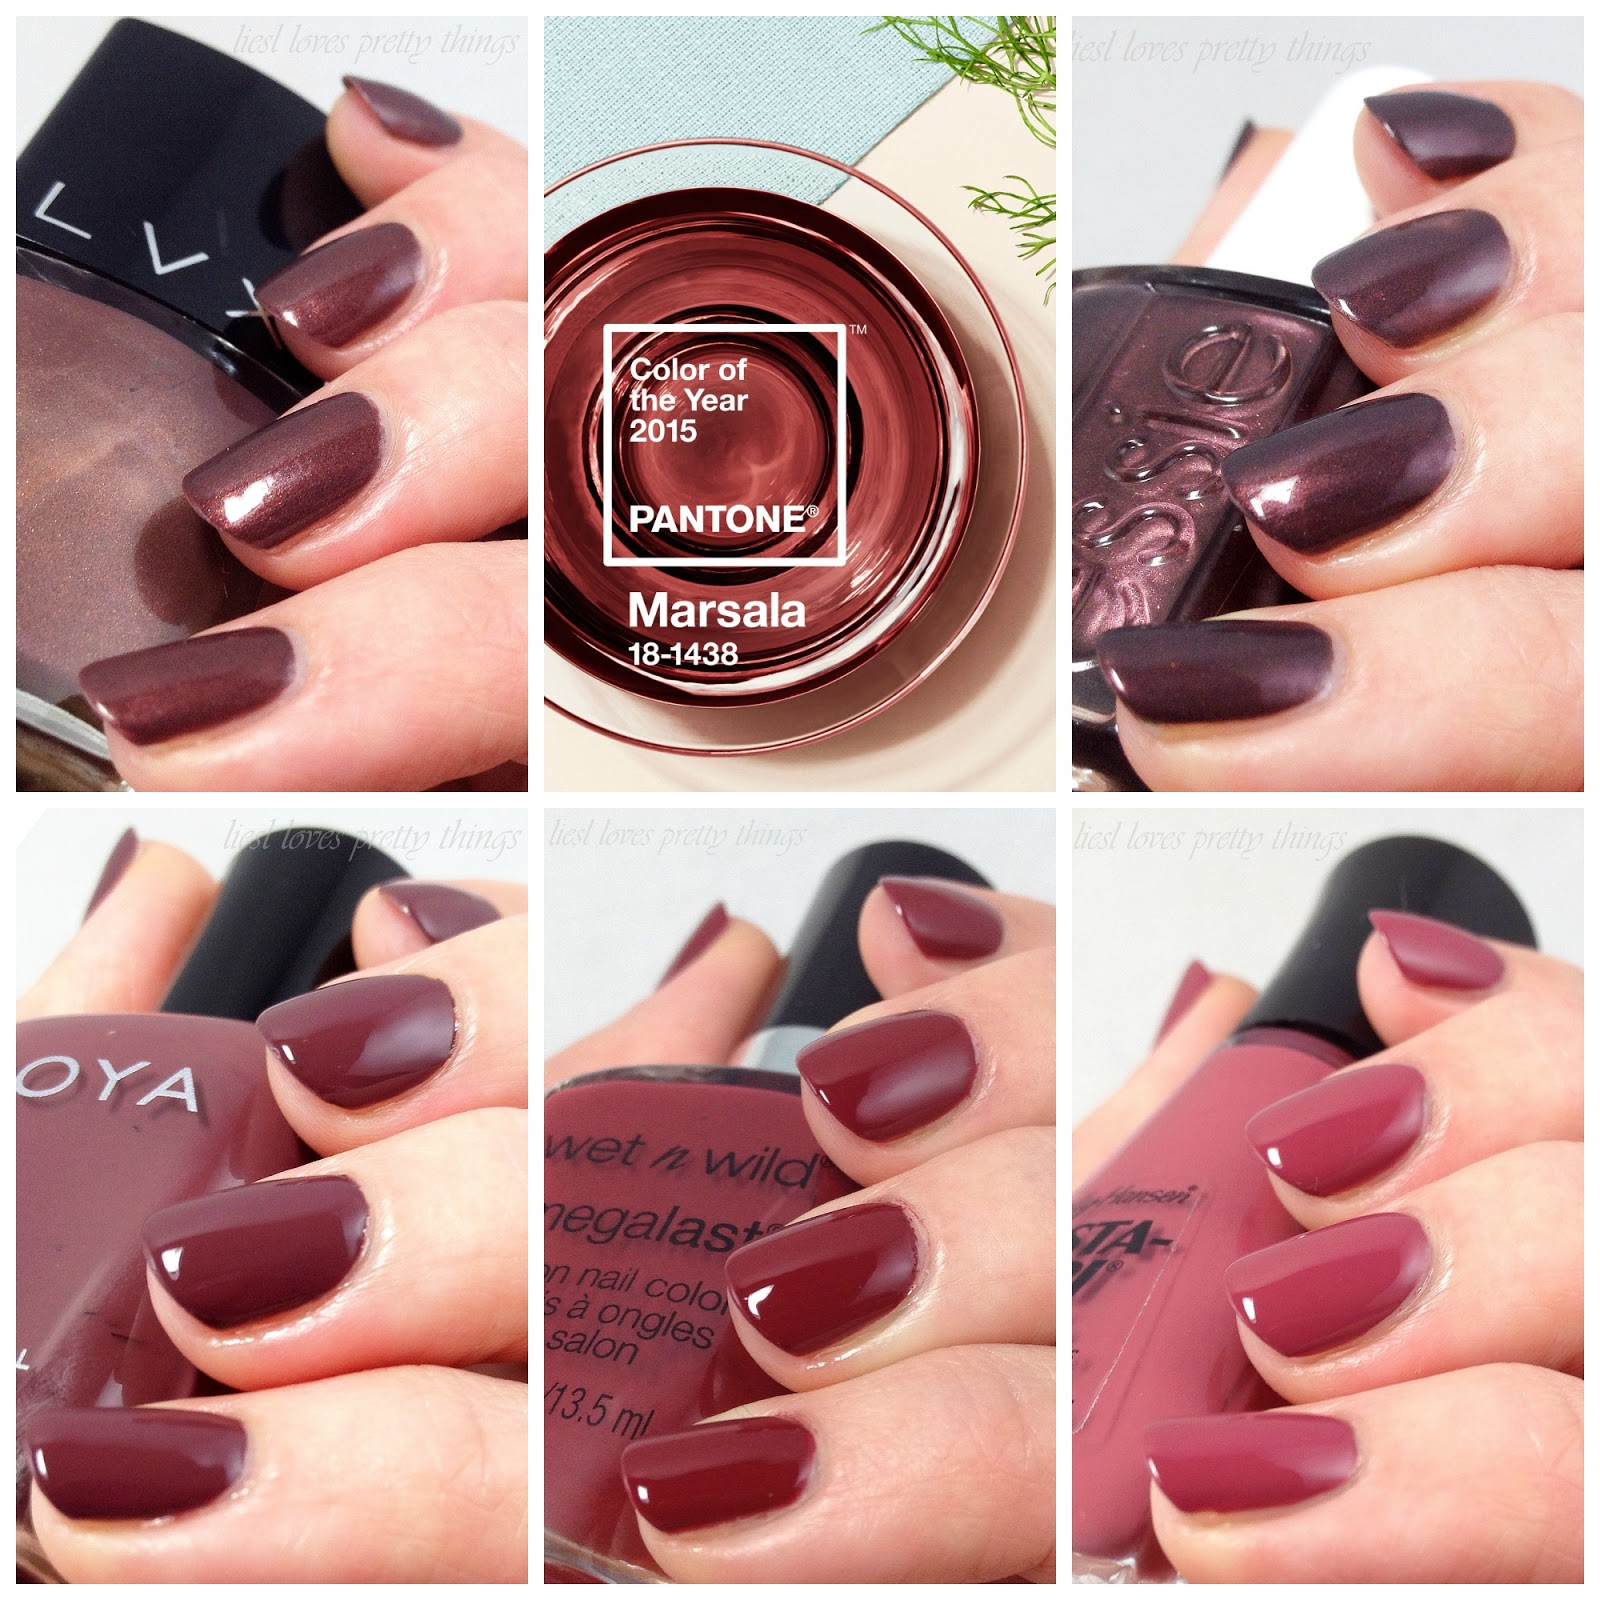 Pantone 2015 Color of the Year: Marsala Polish Picks